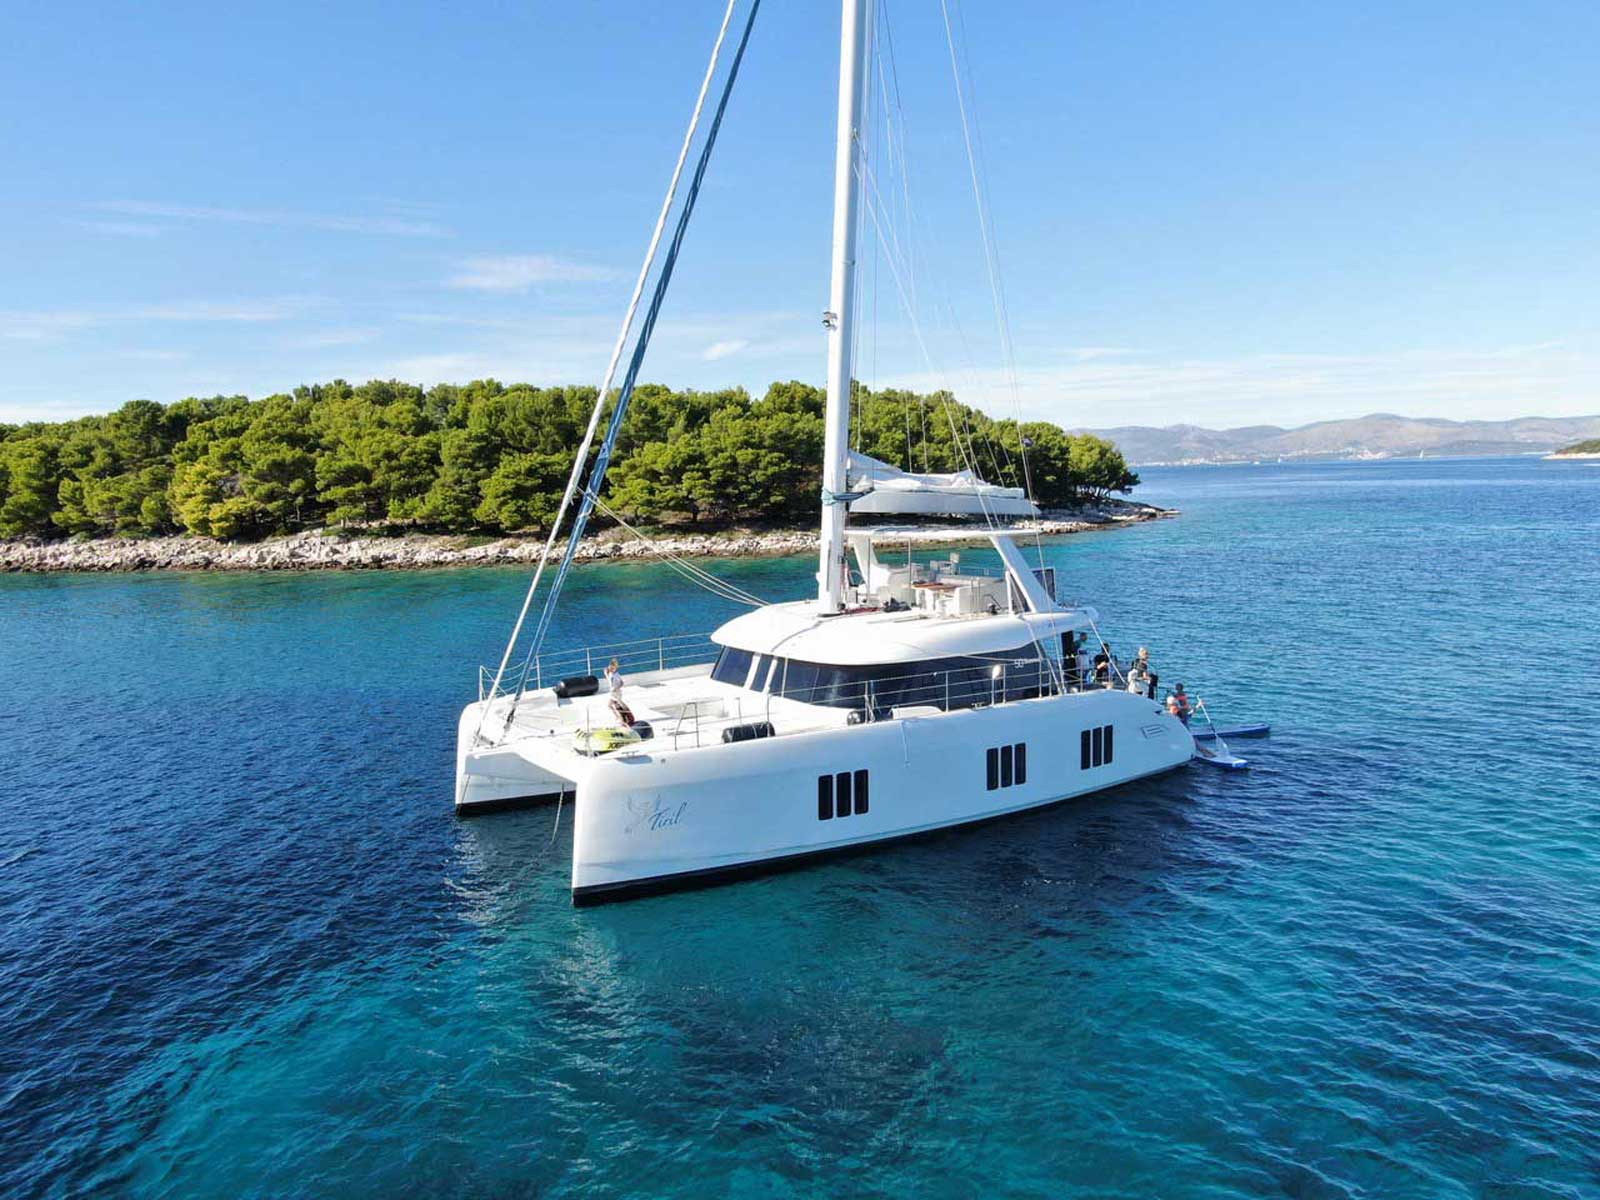 The electric sailing catamaran Sunreef 50 Eco at anchor in the lagoon nearby a small island.